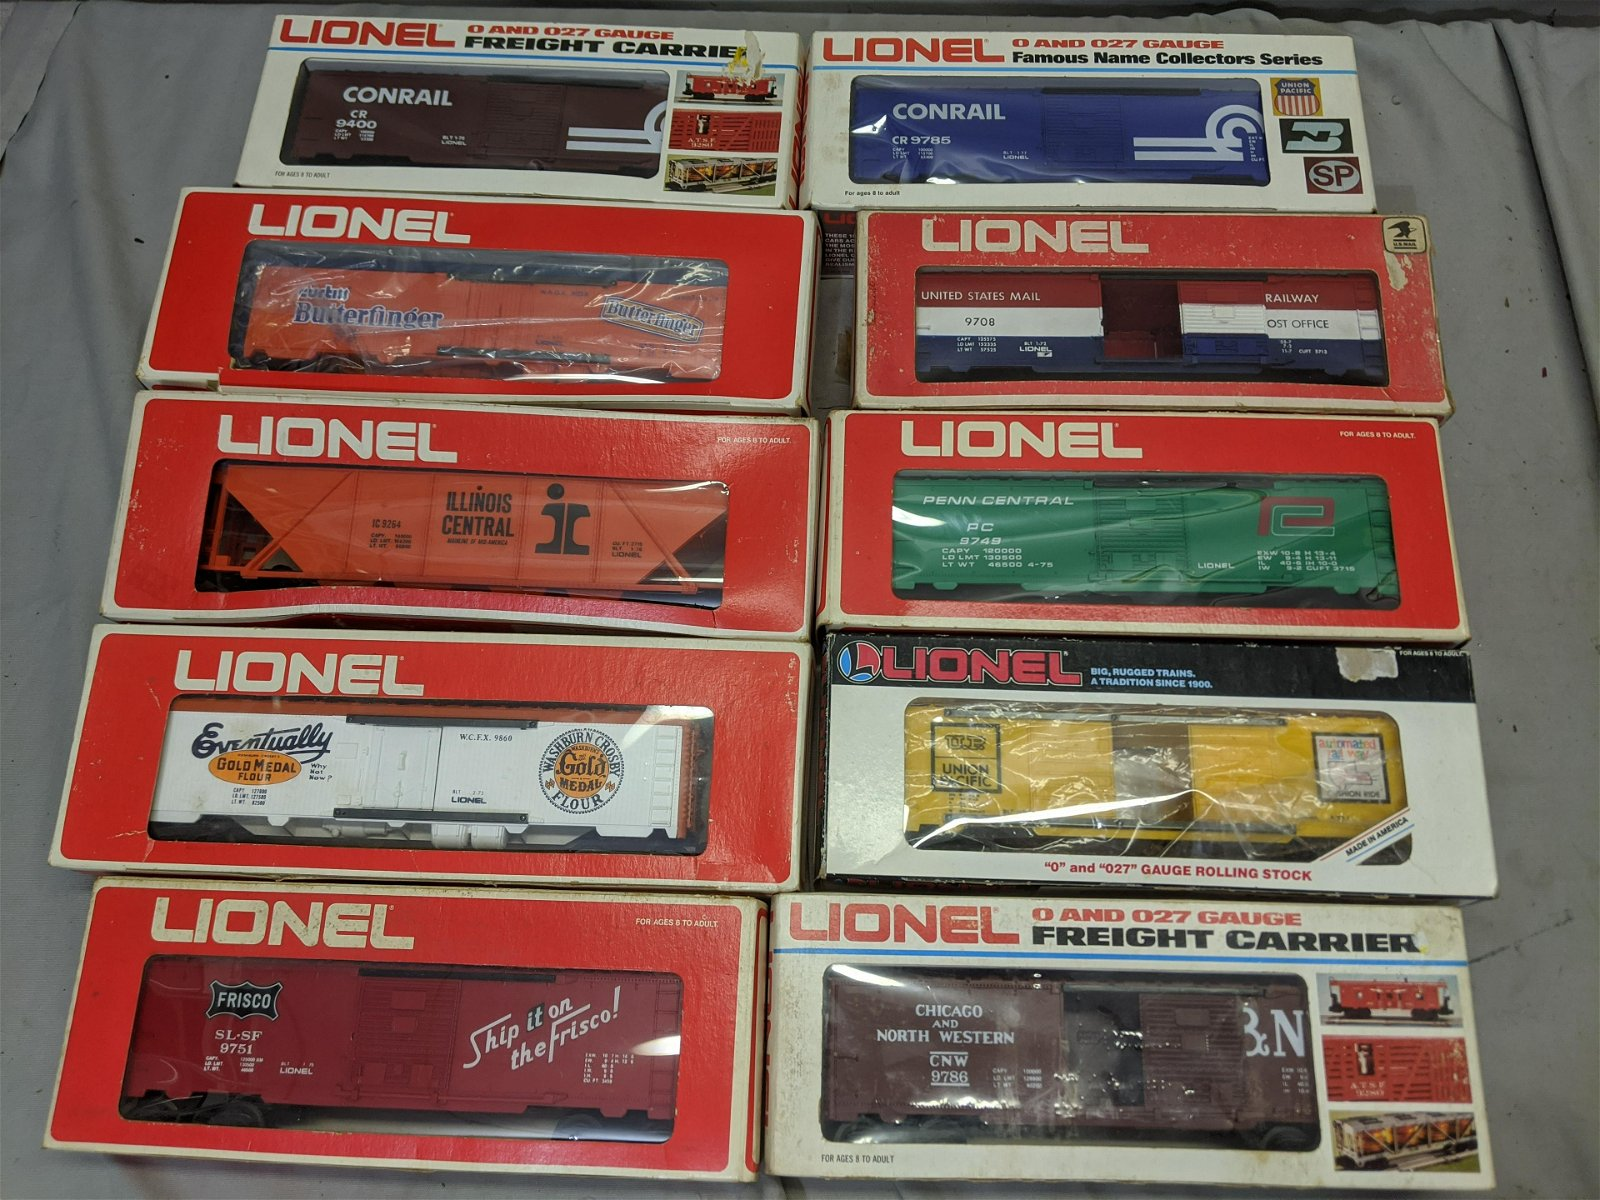 Lot 10 Lionel Freight Cars in Boxes